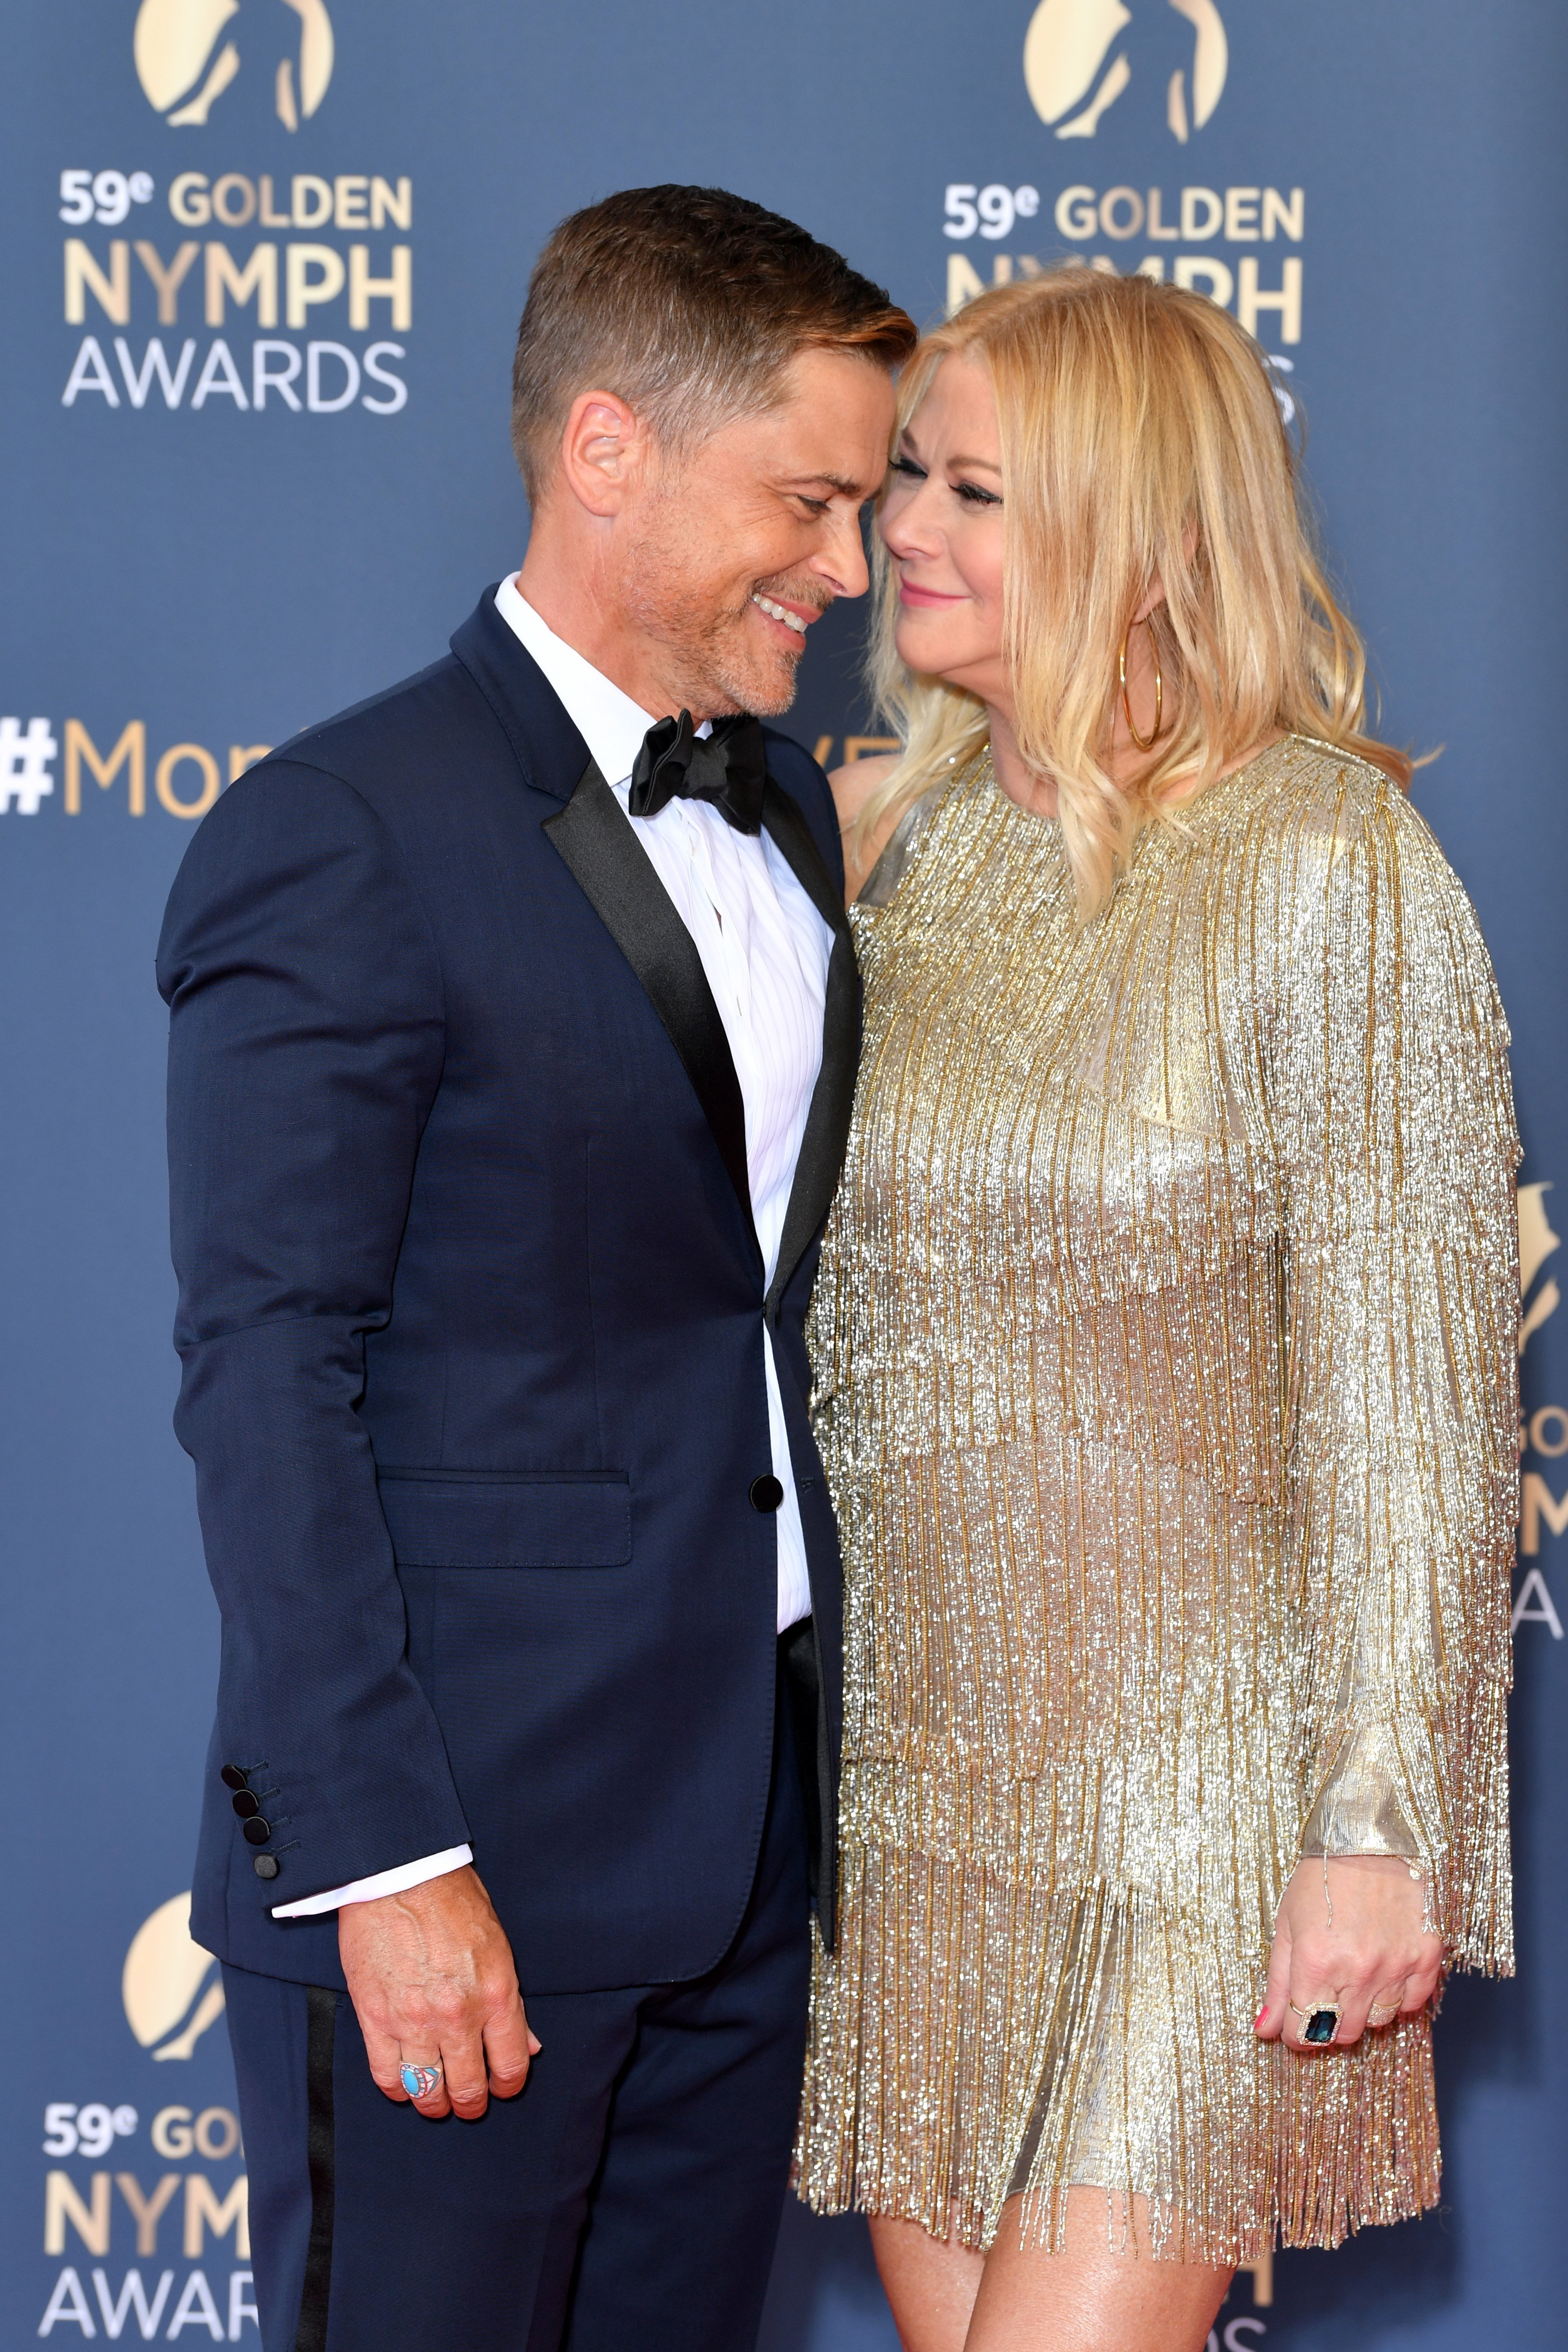 Rob Lowe and wife Sheryl Berkoff attend the closing ceremony of the 59th Monte Carlo TV Festival on June 18, 2019, in Monte-Carlo, Monaco. | Source: Getty Images.